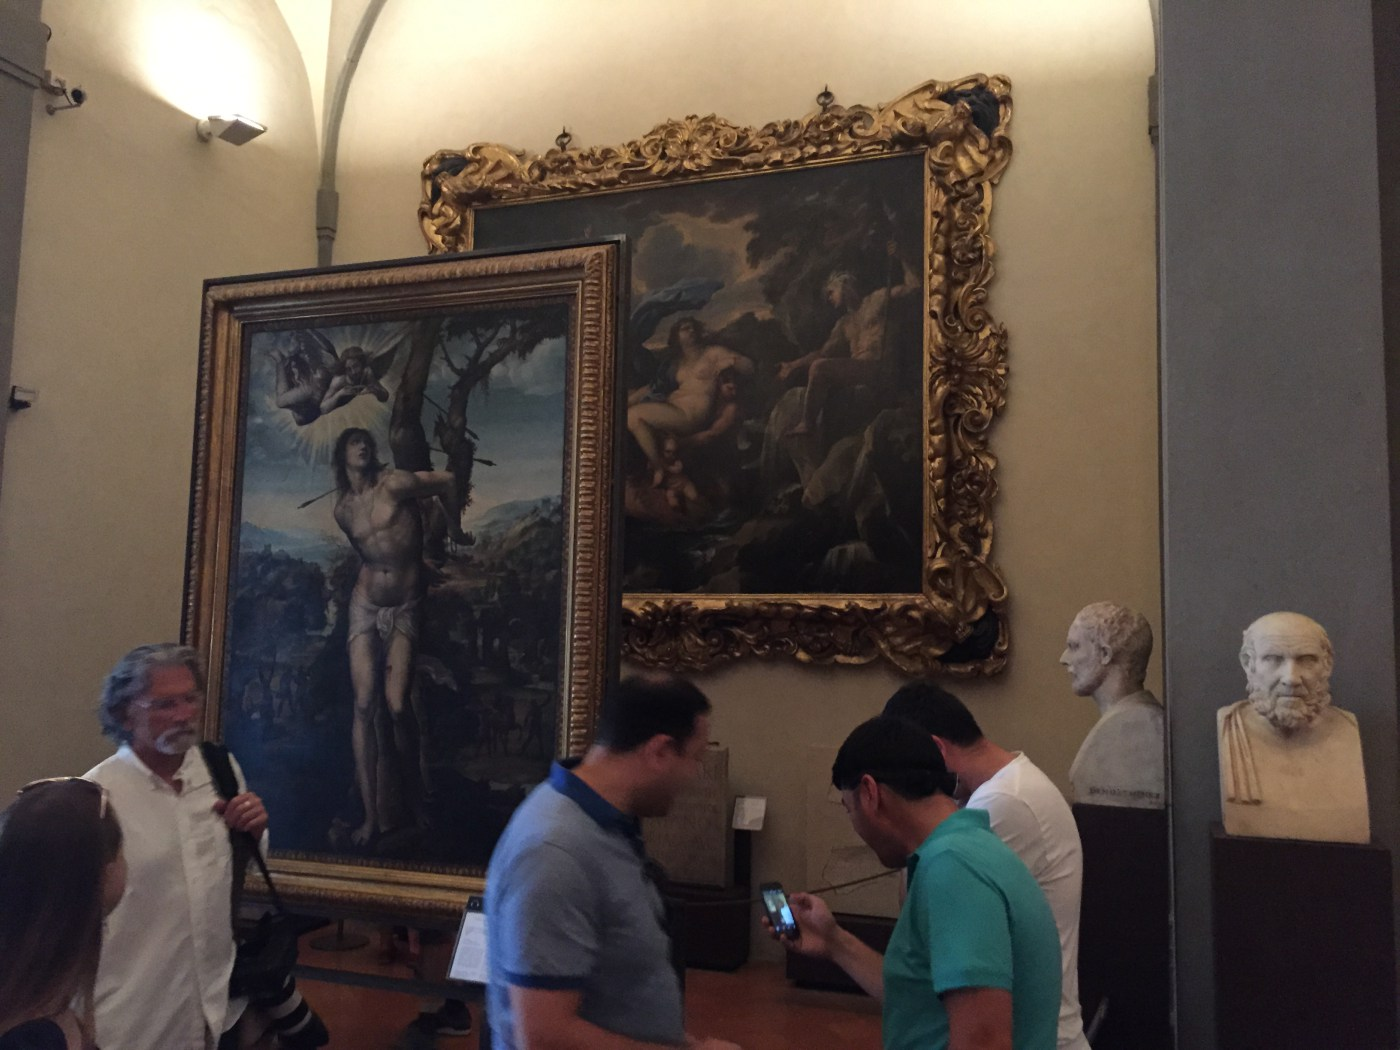 The Gallery setup in the Uffizzi gallery